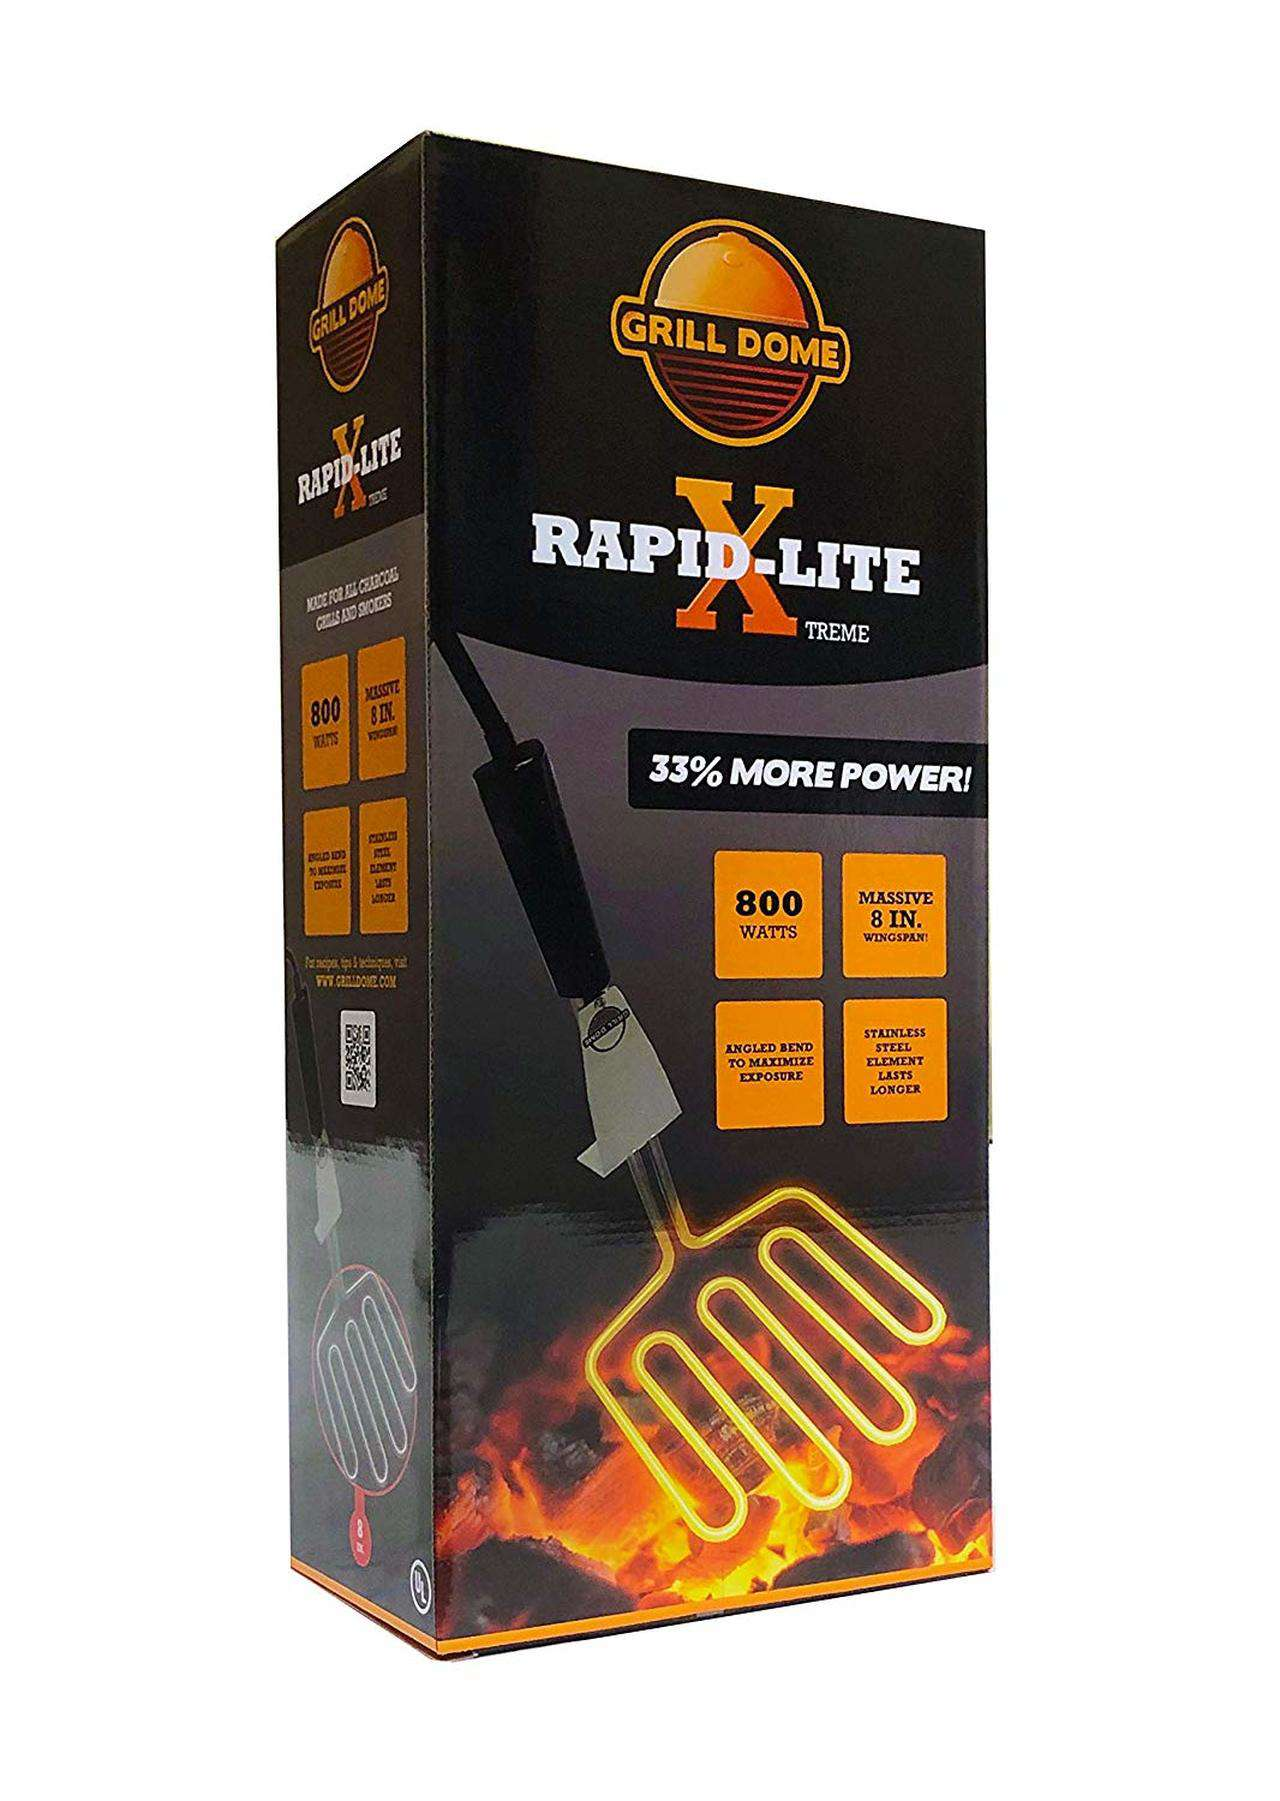 Grill Dome RAPID-LITE Xtreme Electric Charcoal Starter